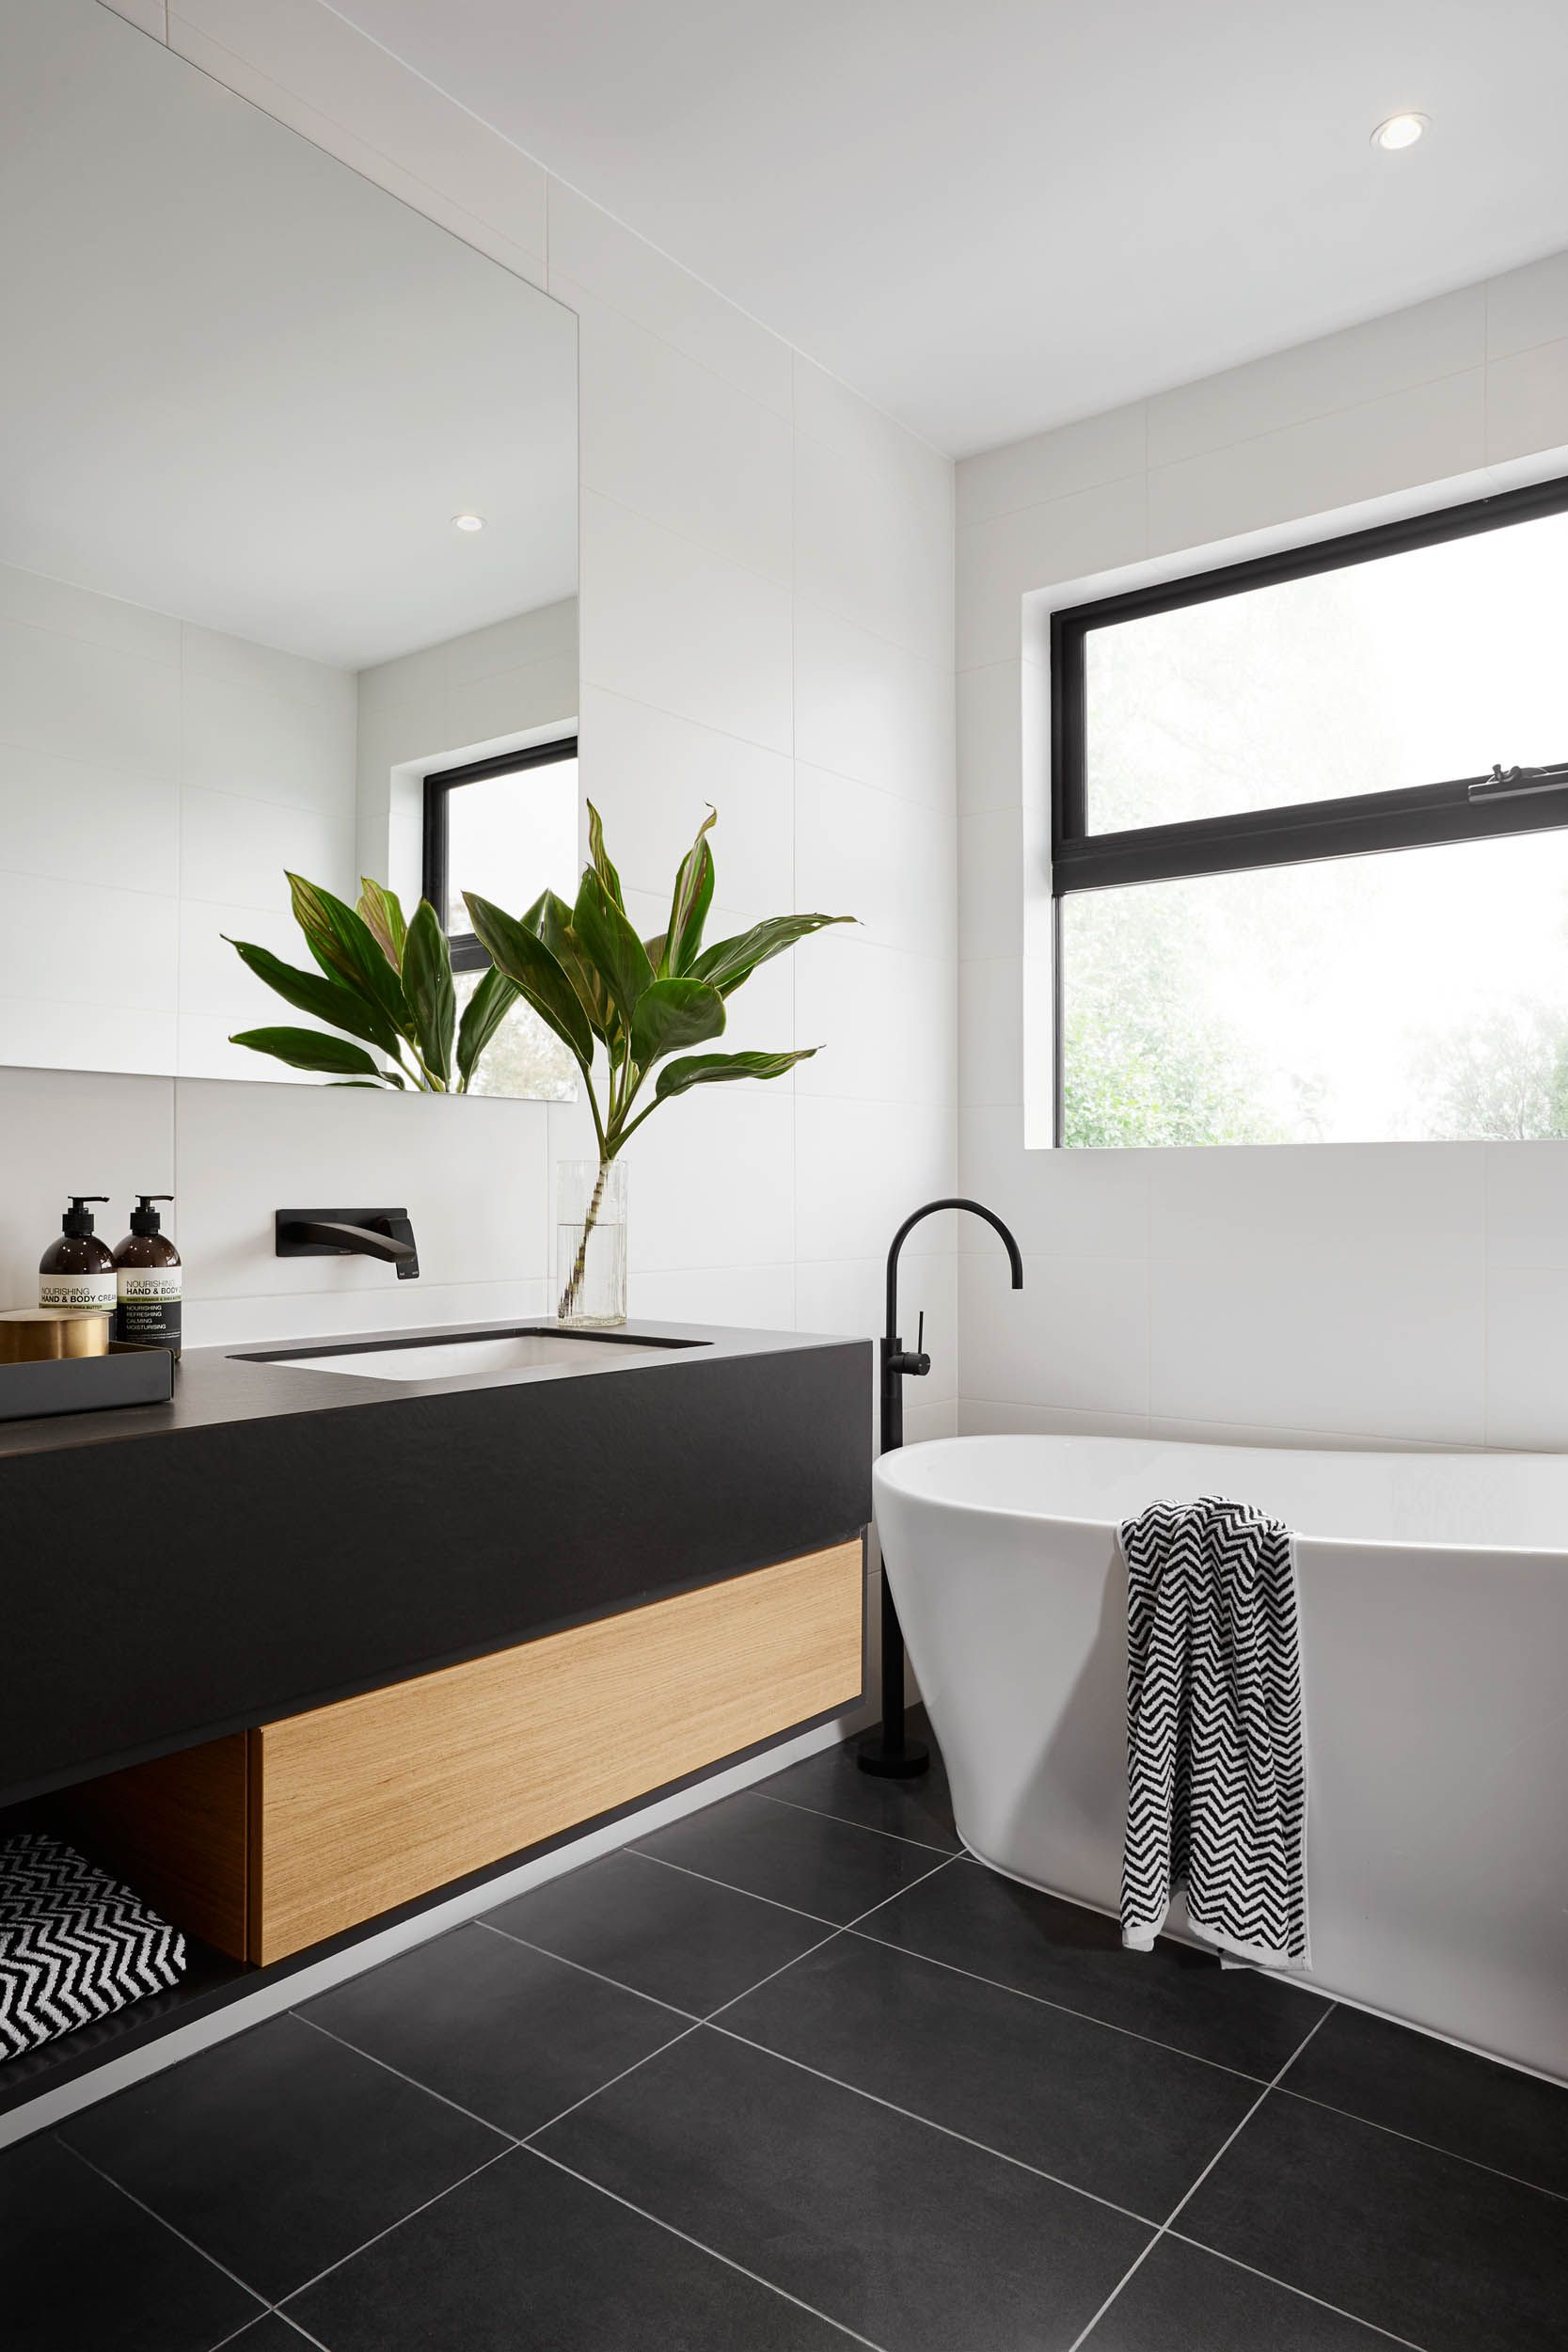 Ensuite Bathroom Fixtures modern black and white bathroom with black tile & matte black